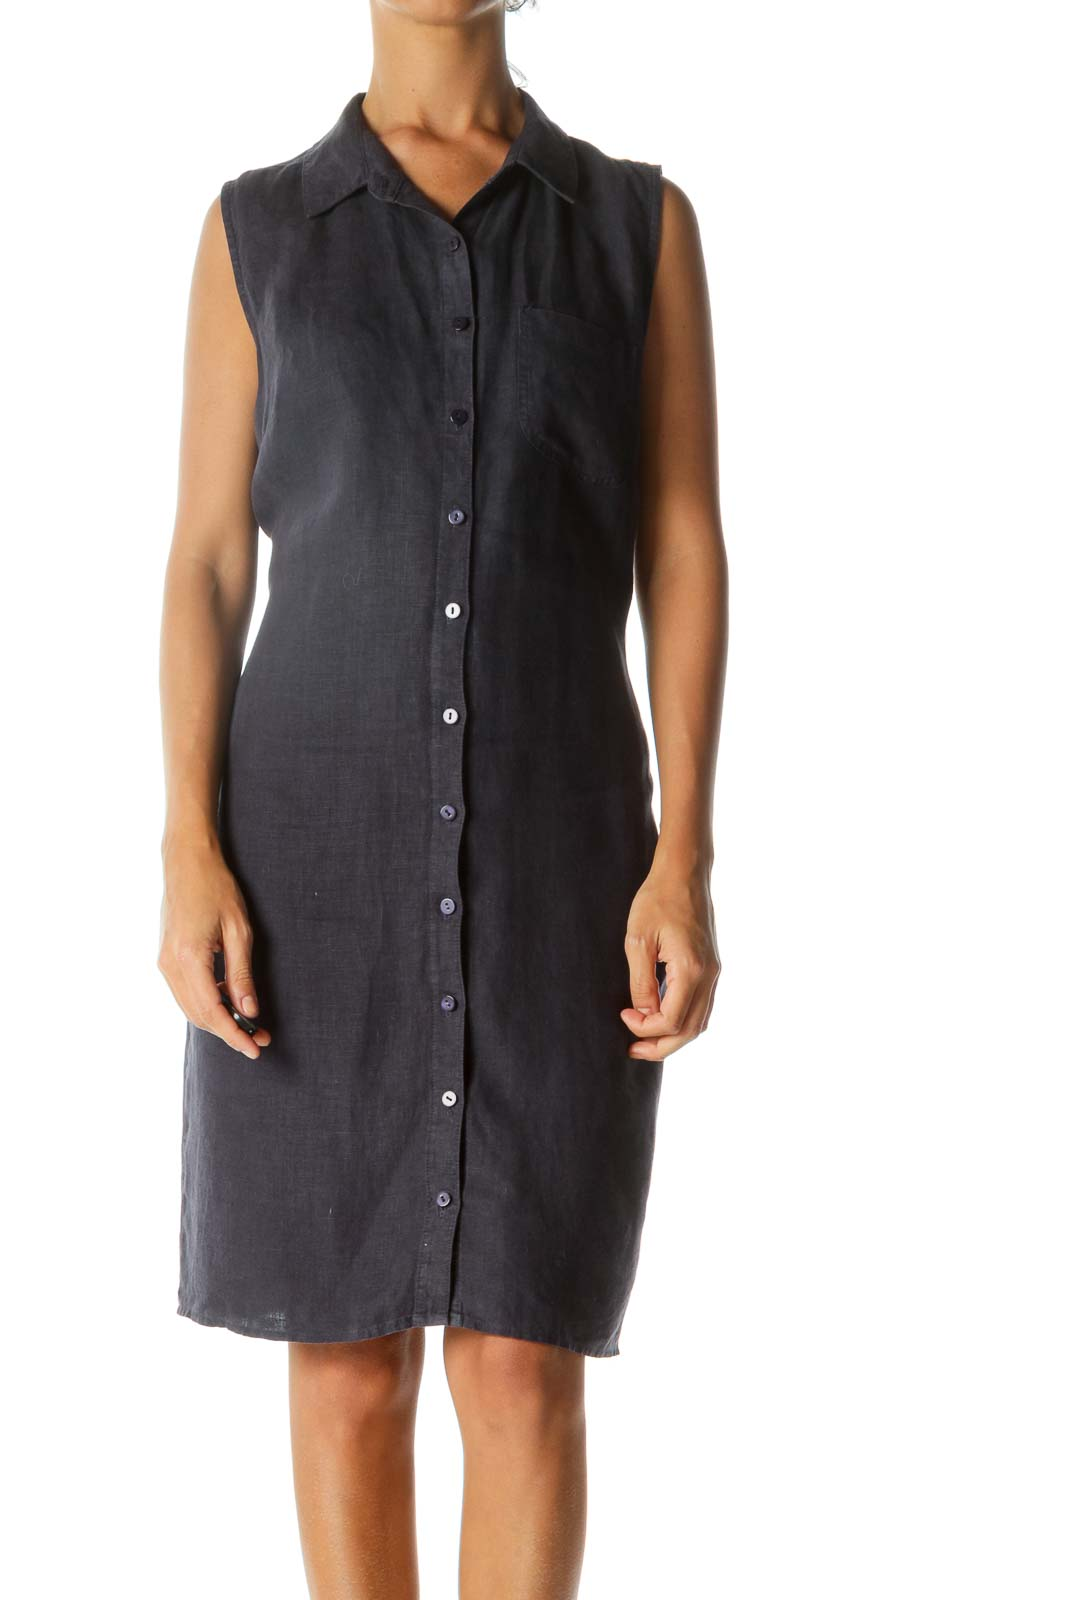 Navy Linen Sleeveless Buttoned Shirt Dress